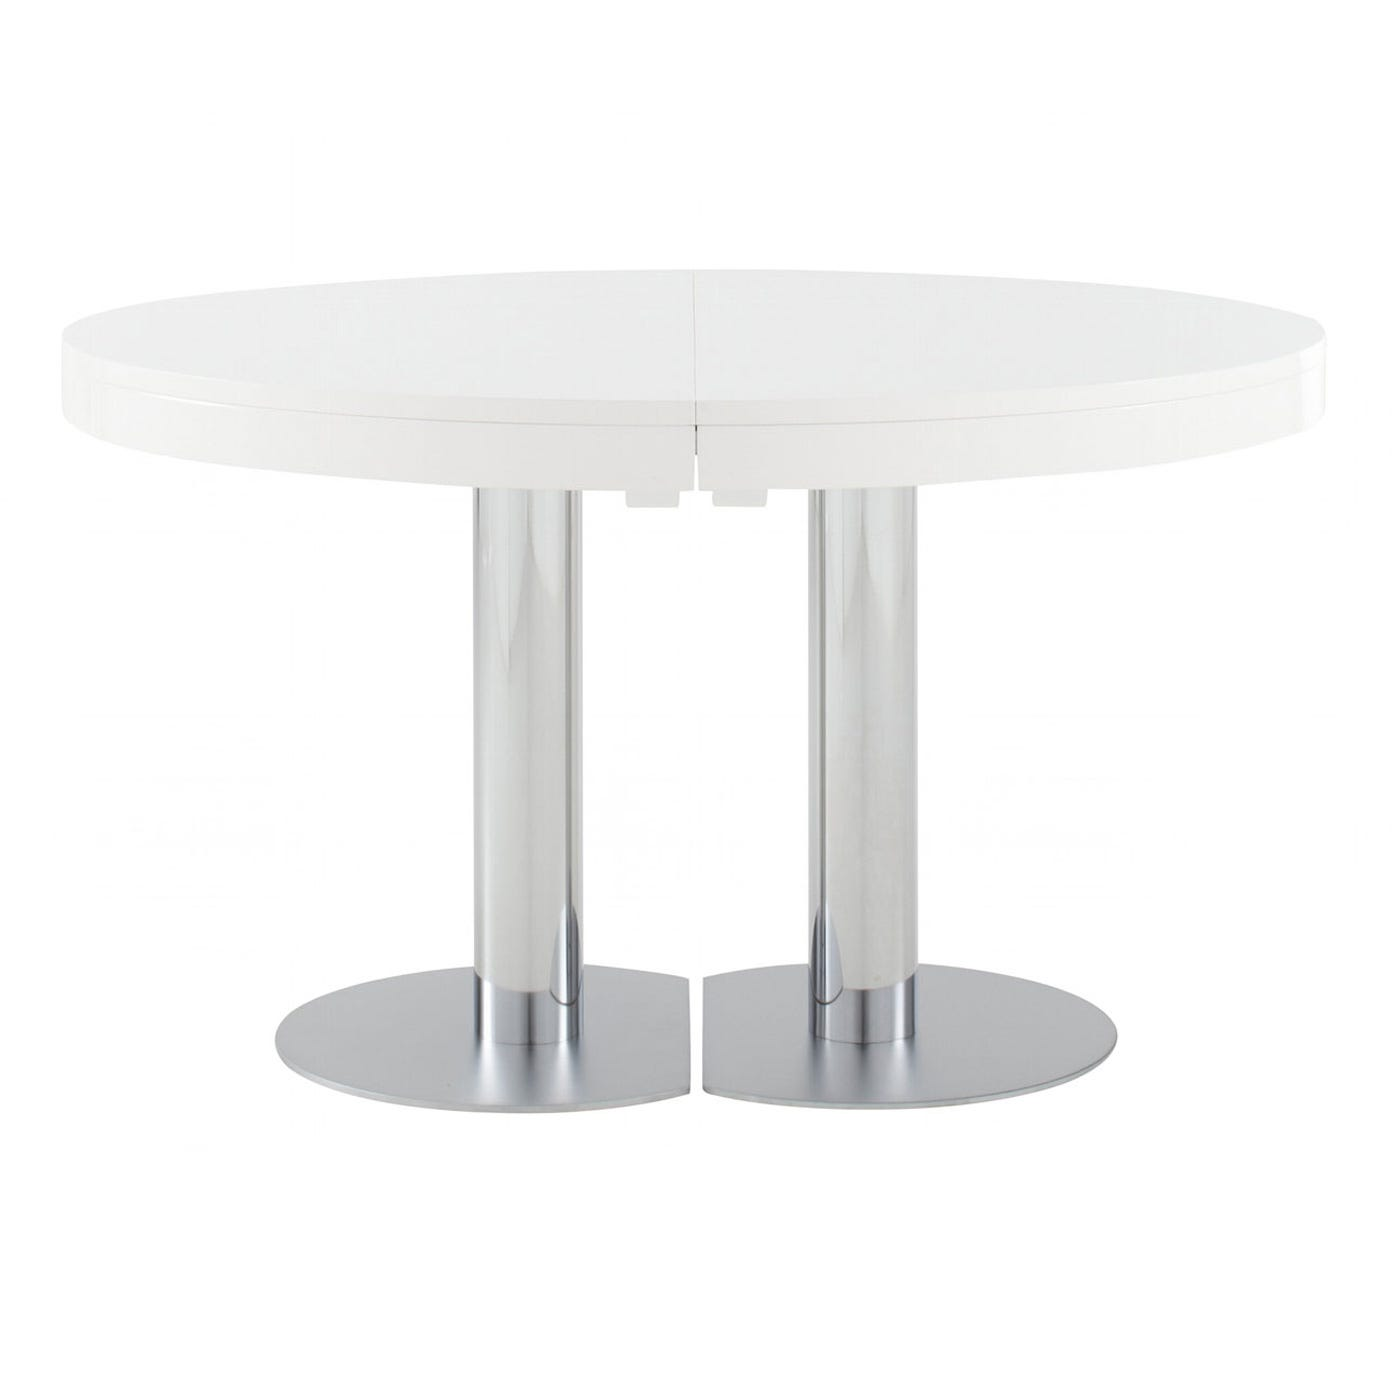 Craft 2 dining table 4 6 seater in white lacquer for White lacquer dining table